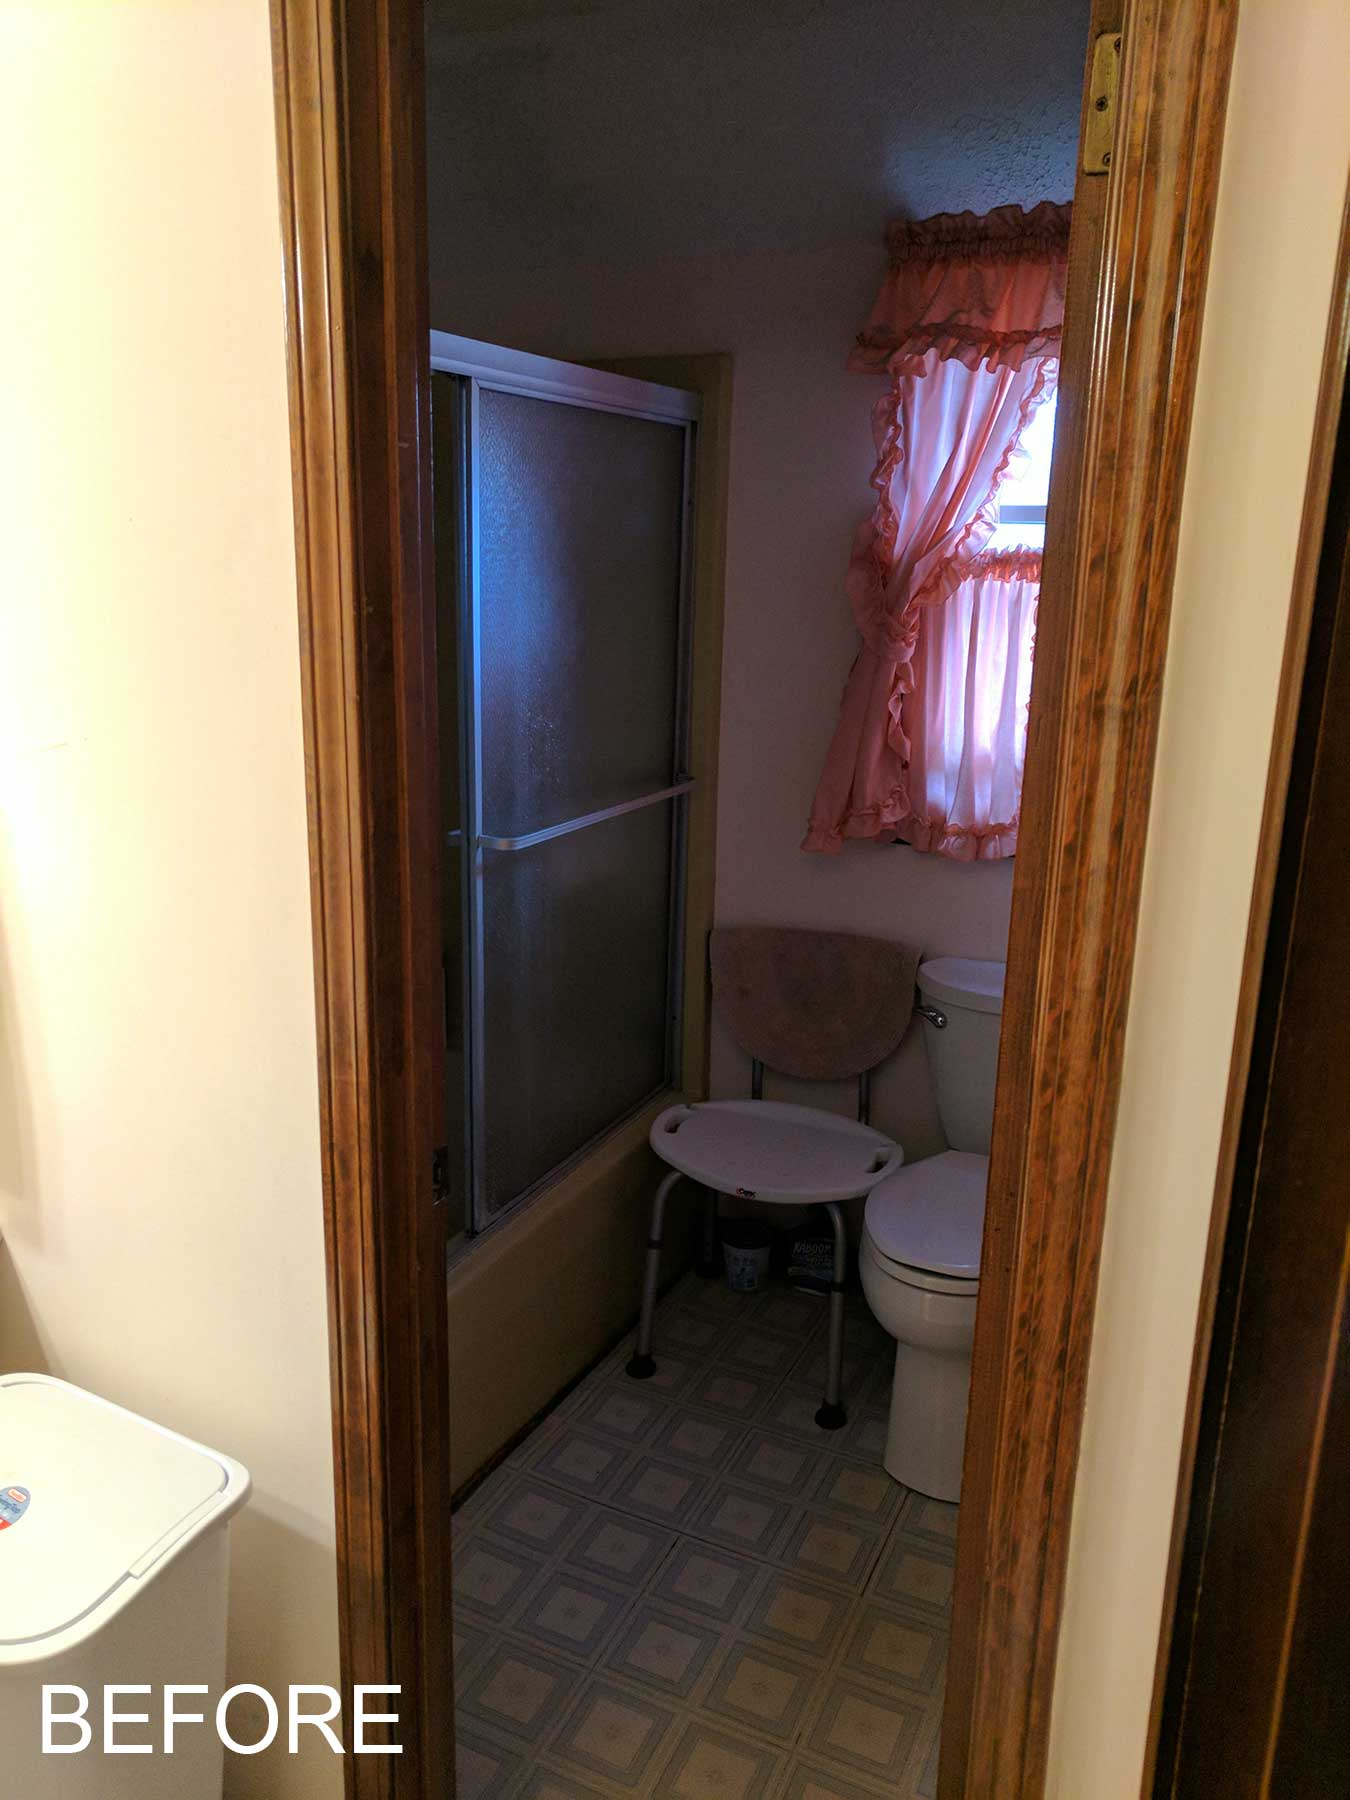 View of shower and toilet